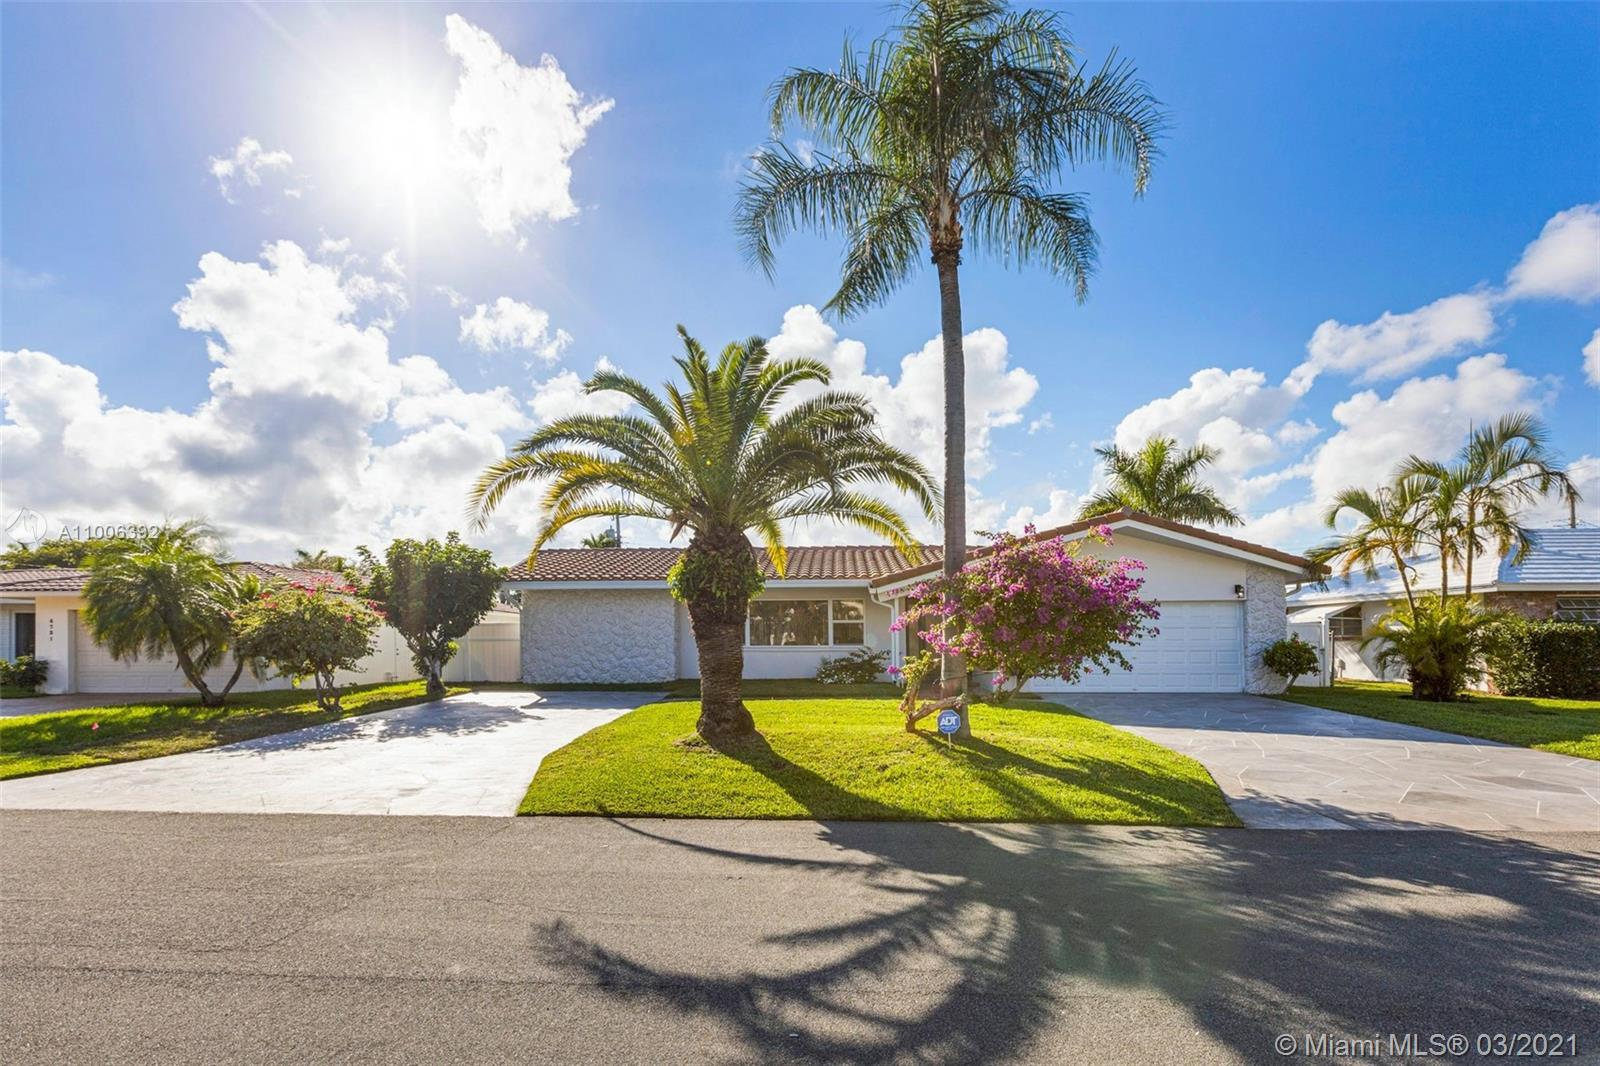 Coral Ridge Country Club - 4741 NE 29th Ave, Fort Lauderdale, FL 33308